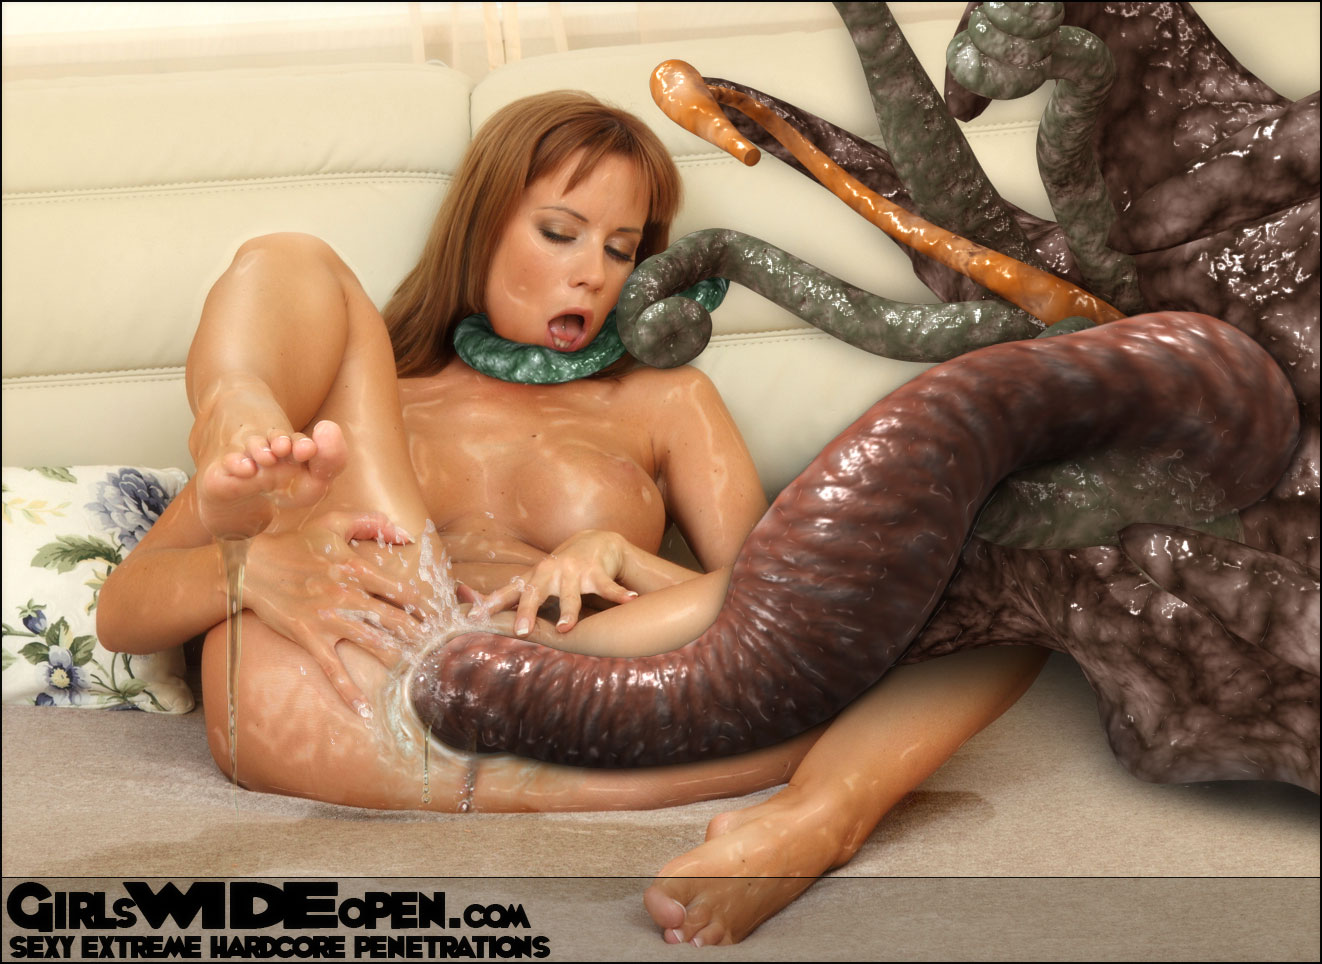 Pic monster having sex with a woman exposed movie